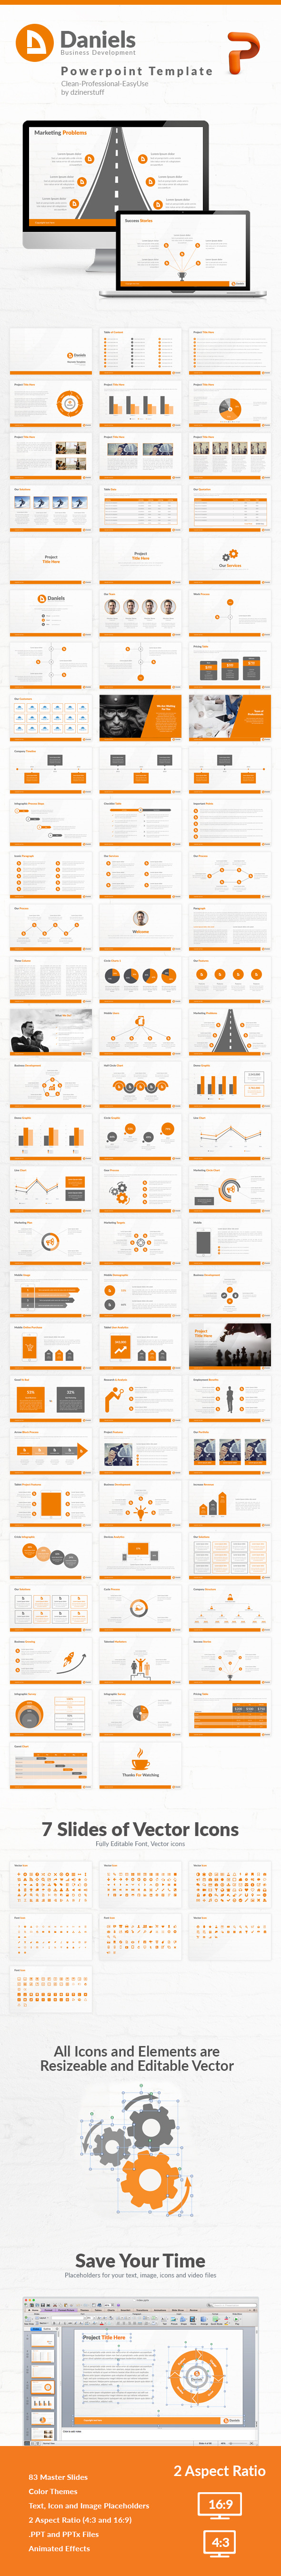 GraphicRiver Daniels Powerpoint Presentation Template 11843475